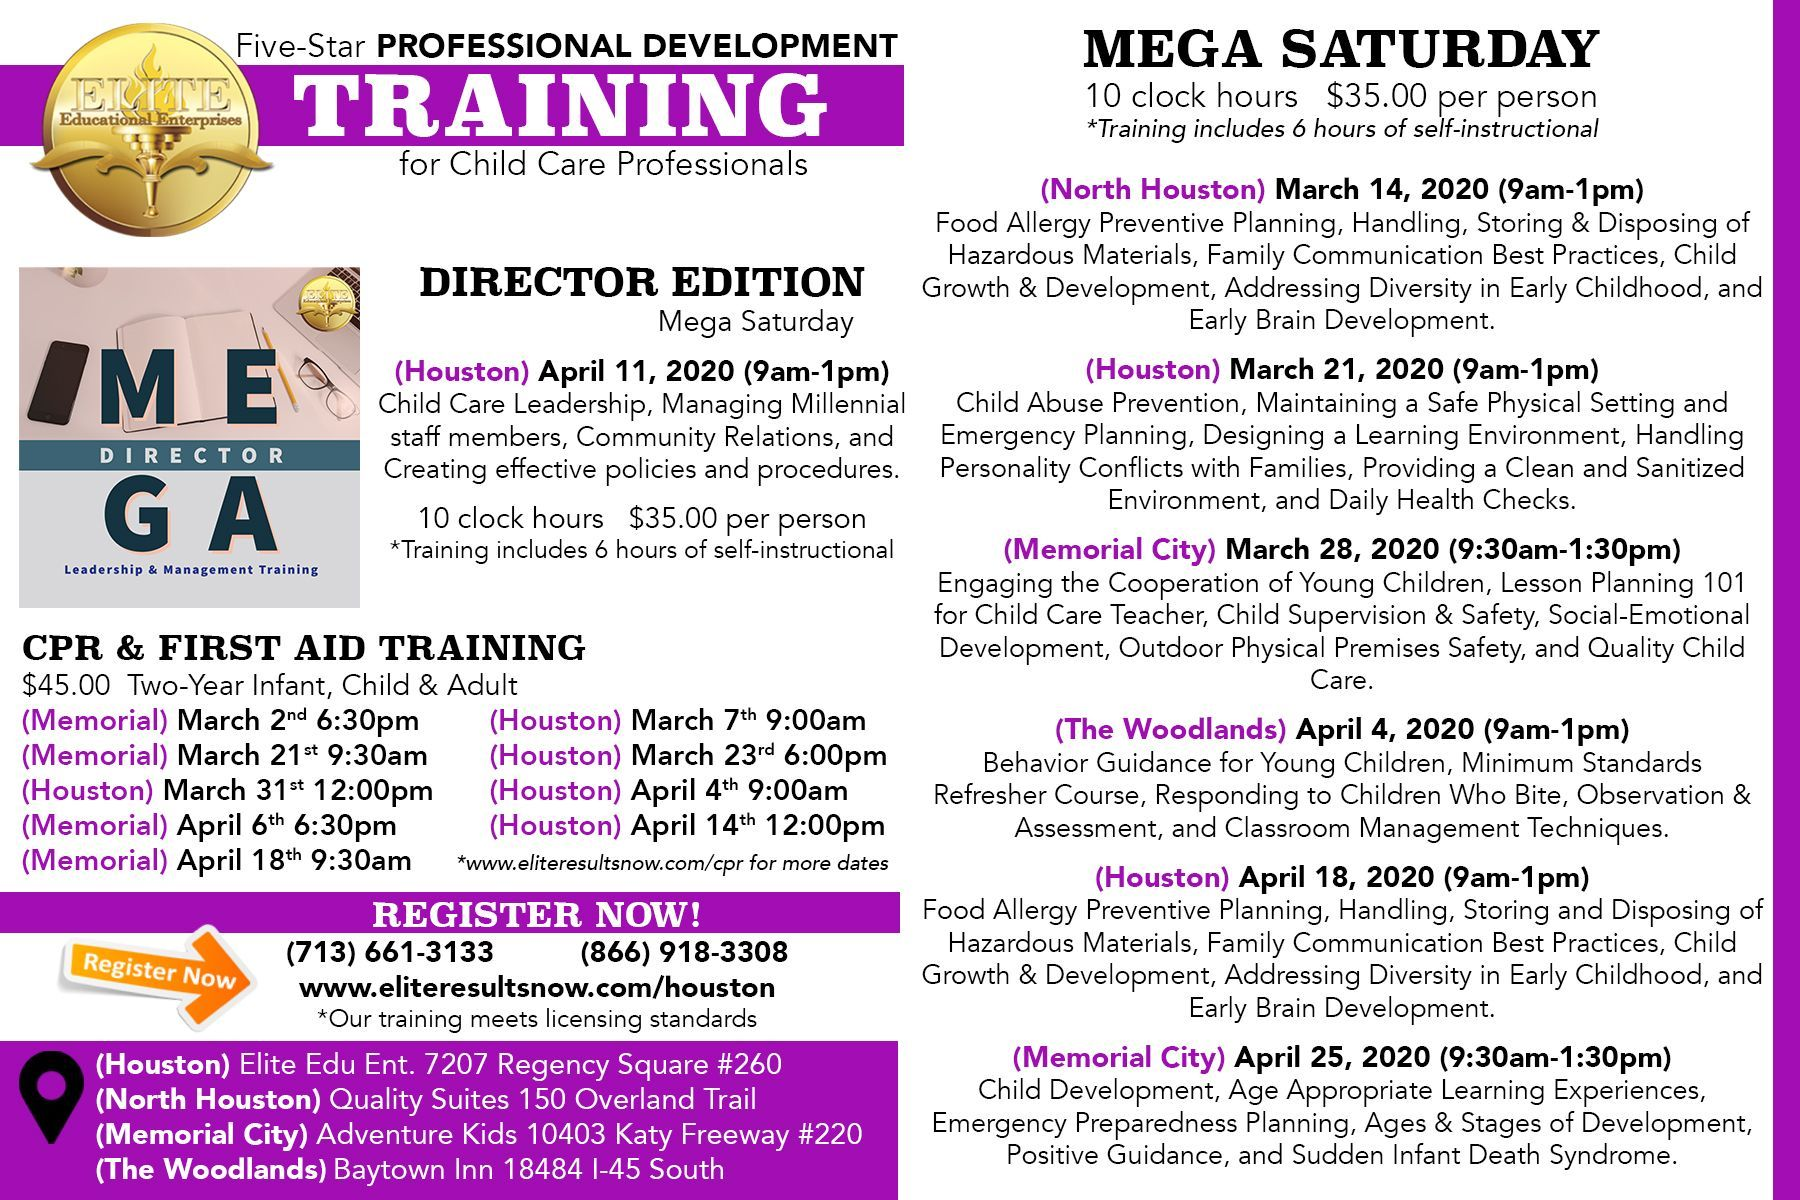 Join us for mega saturday child care training in the